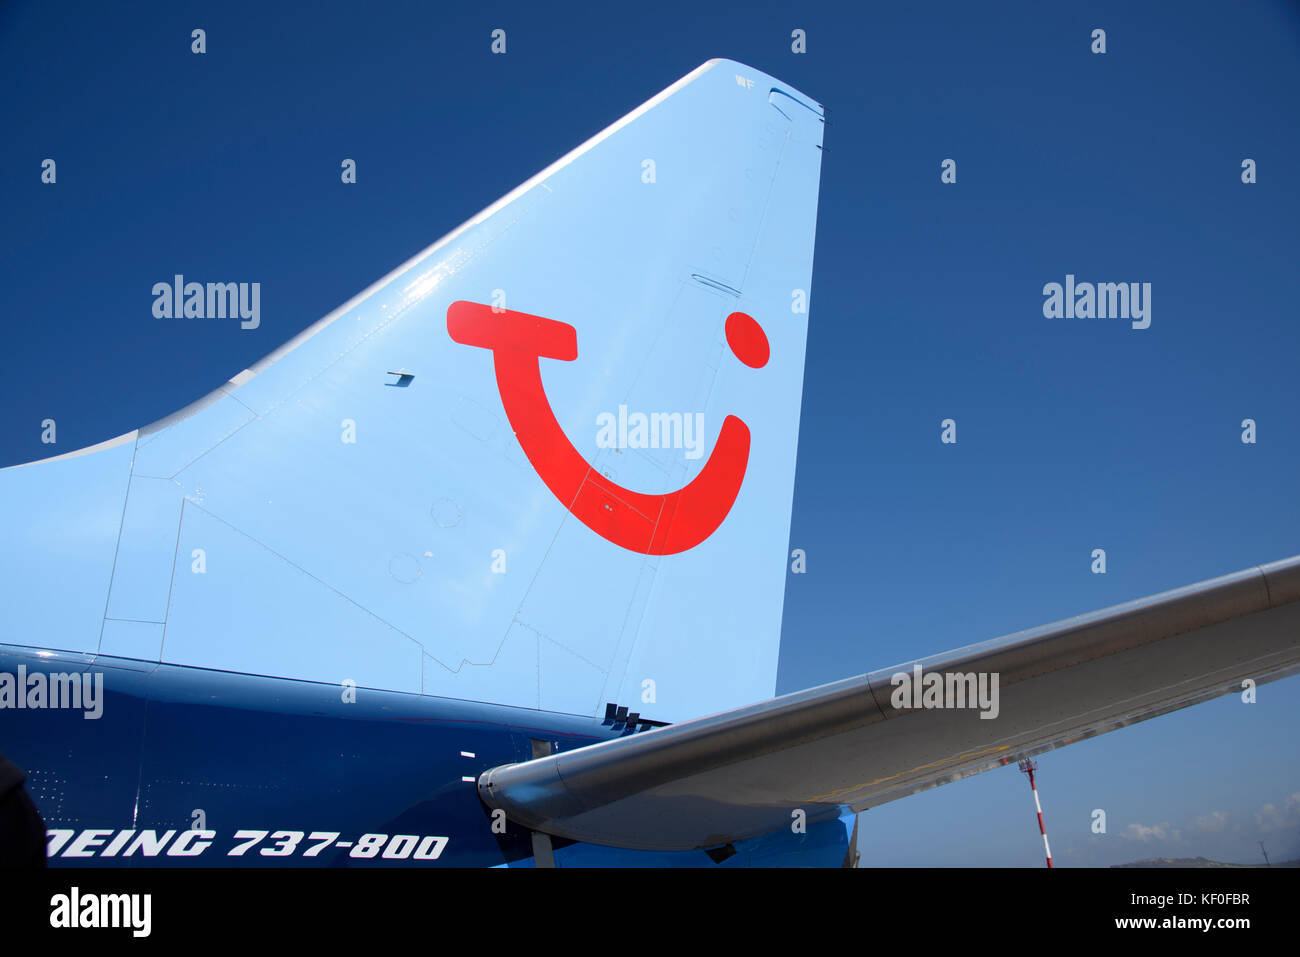 A Boeing 737-800 airplane at Heraklion Airport, Crete, Greece. - Stock Image